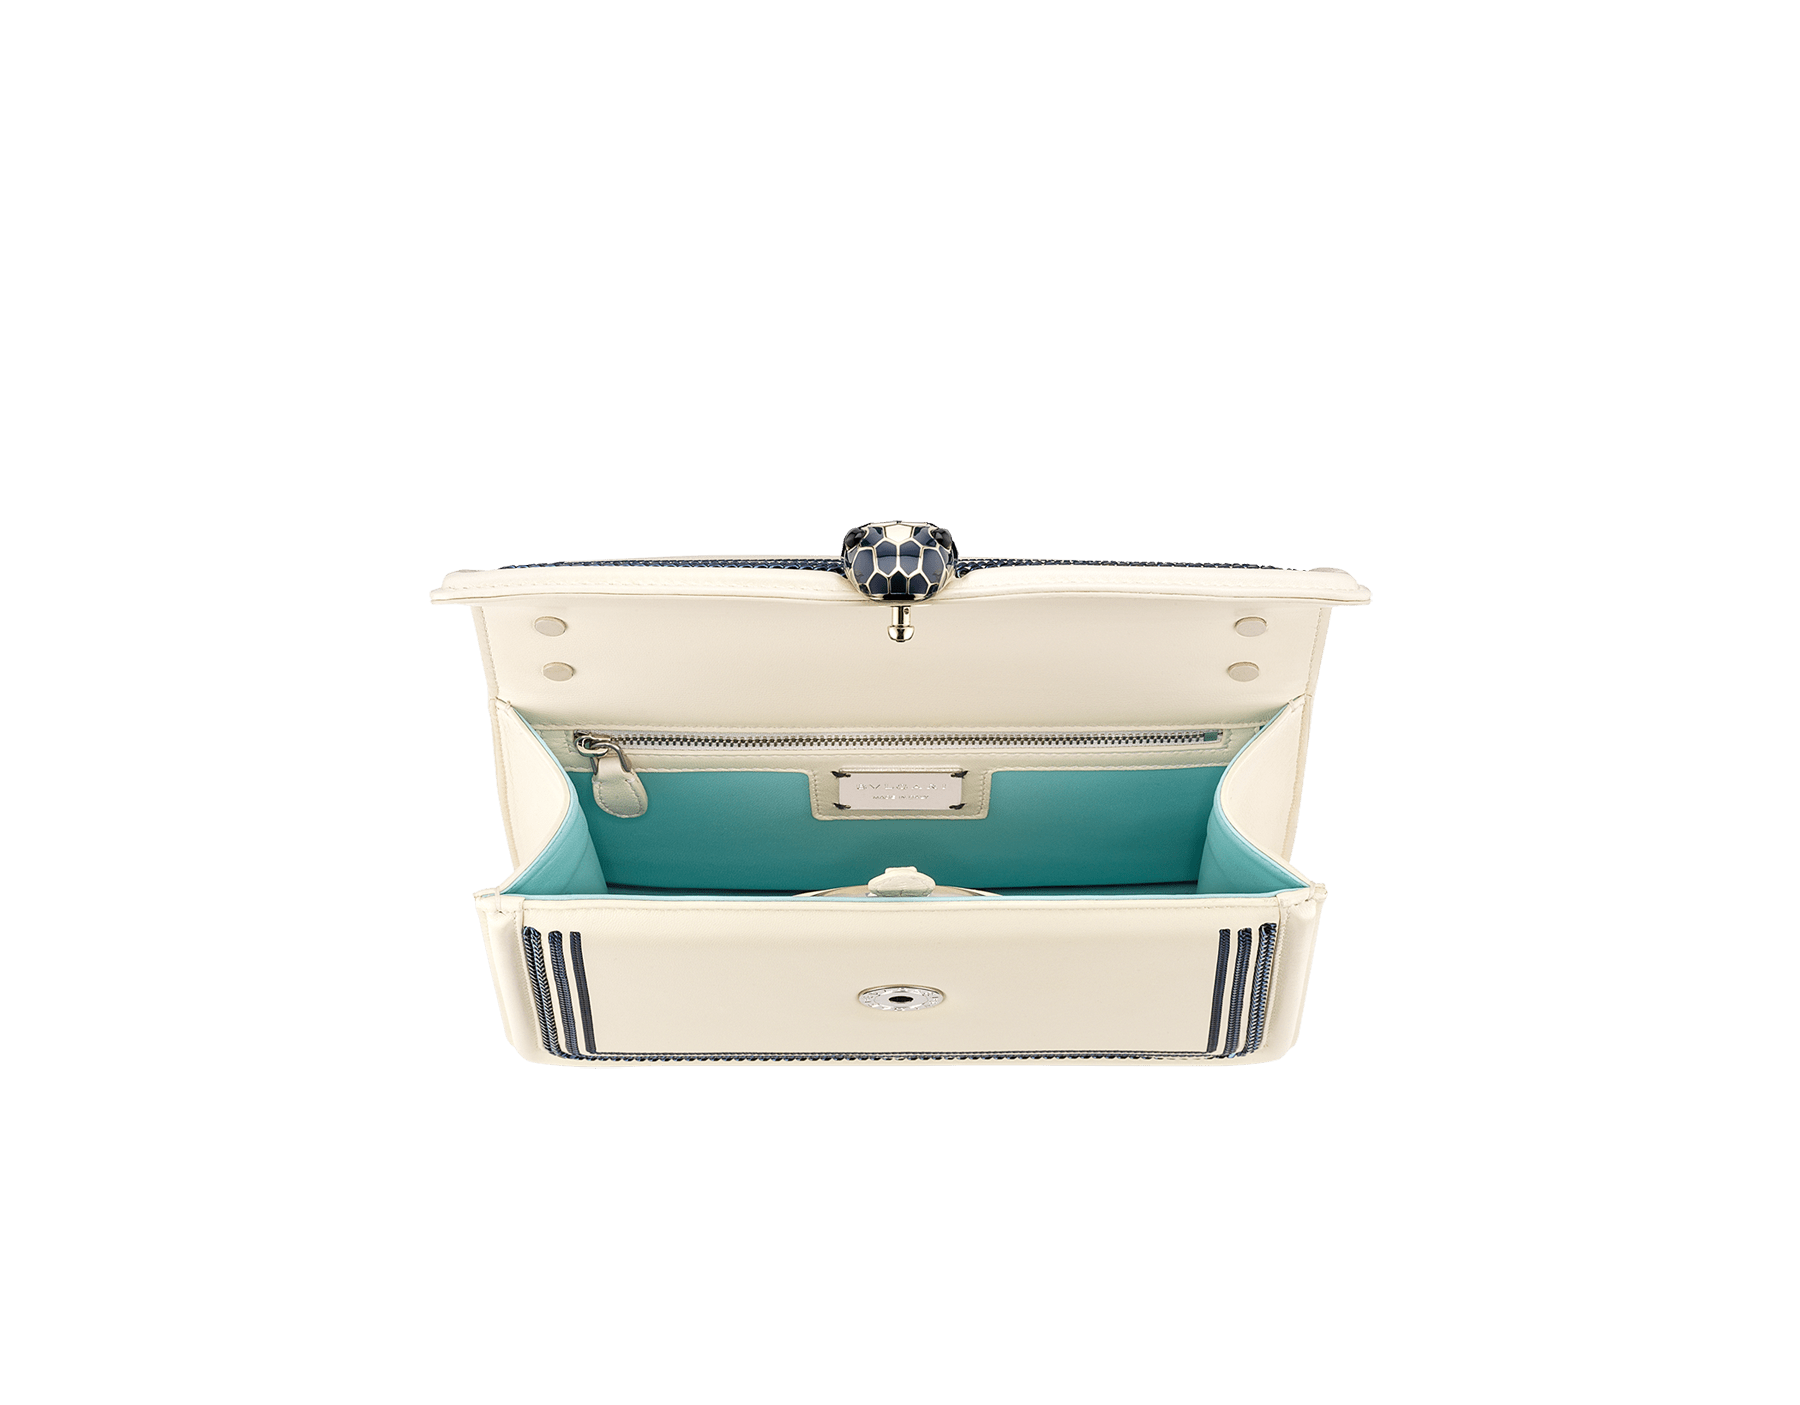 """""""Serpenti Diamond Blast"""" shoulder bag in Ivory Opal white smooth calf leather, featuring a Teal Topaz green 3-Maxi Chain motif, and an Aquamarine light blue nappa leather internal lining. Tempting snakehead closure in palladium-plated brass, embellished with Teal Topaz green and Ivory Opal white enamel, and black onyx eyes. 291173 image 8"""